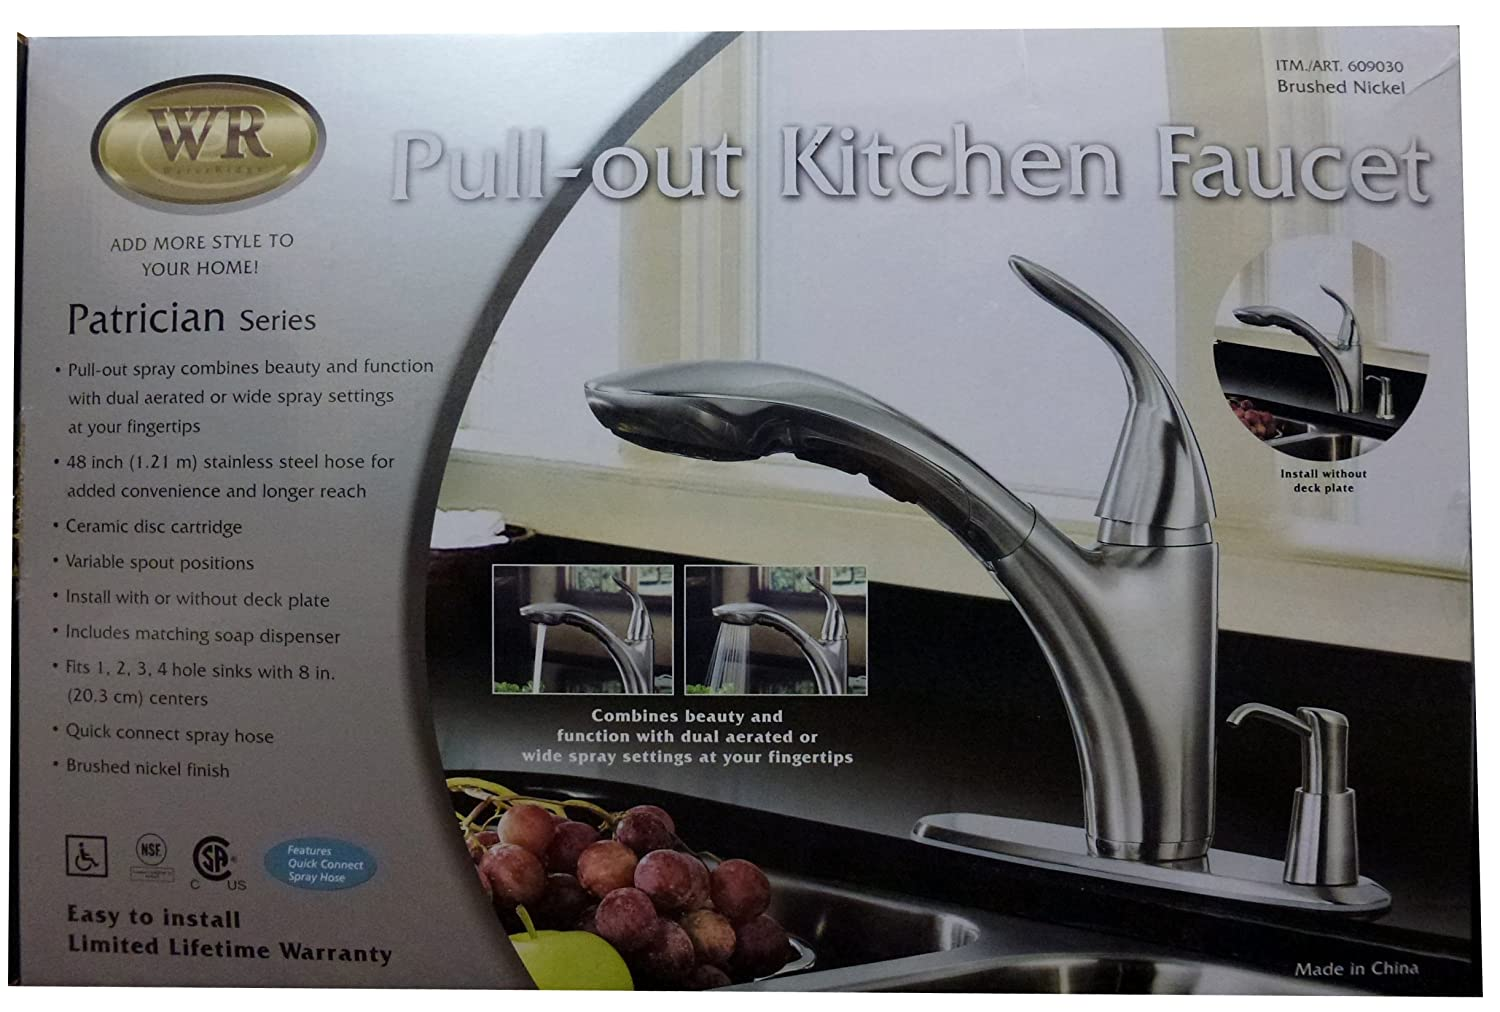 Water Ridge Patrician Series Kitchen Faucet: Brushed Nickel - Touch ...